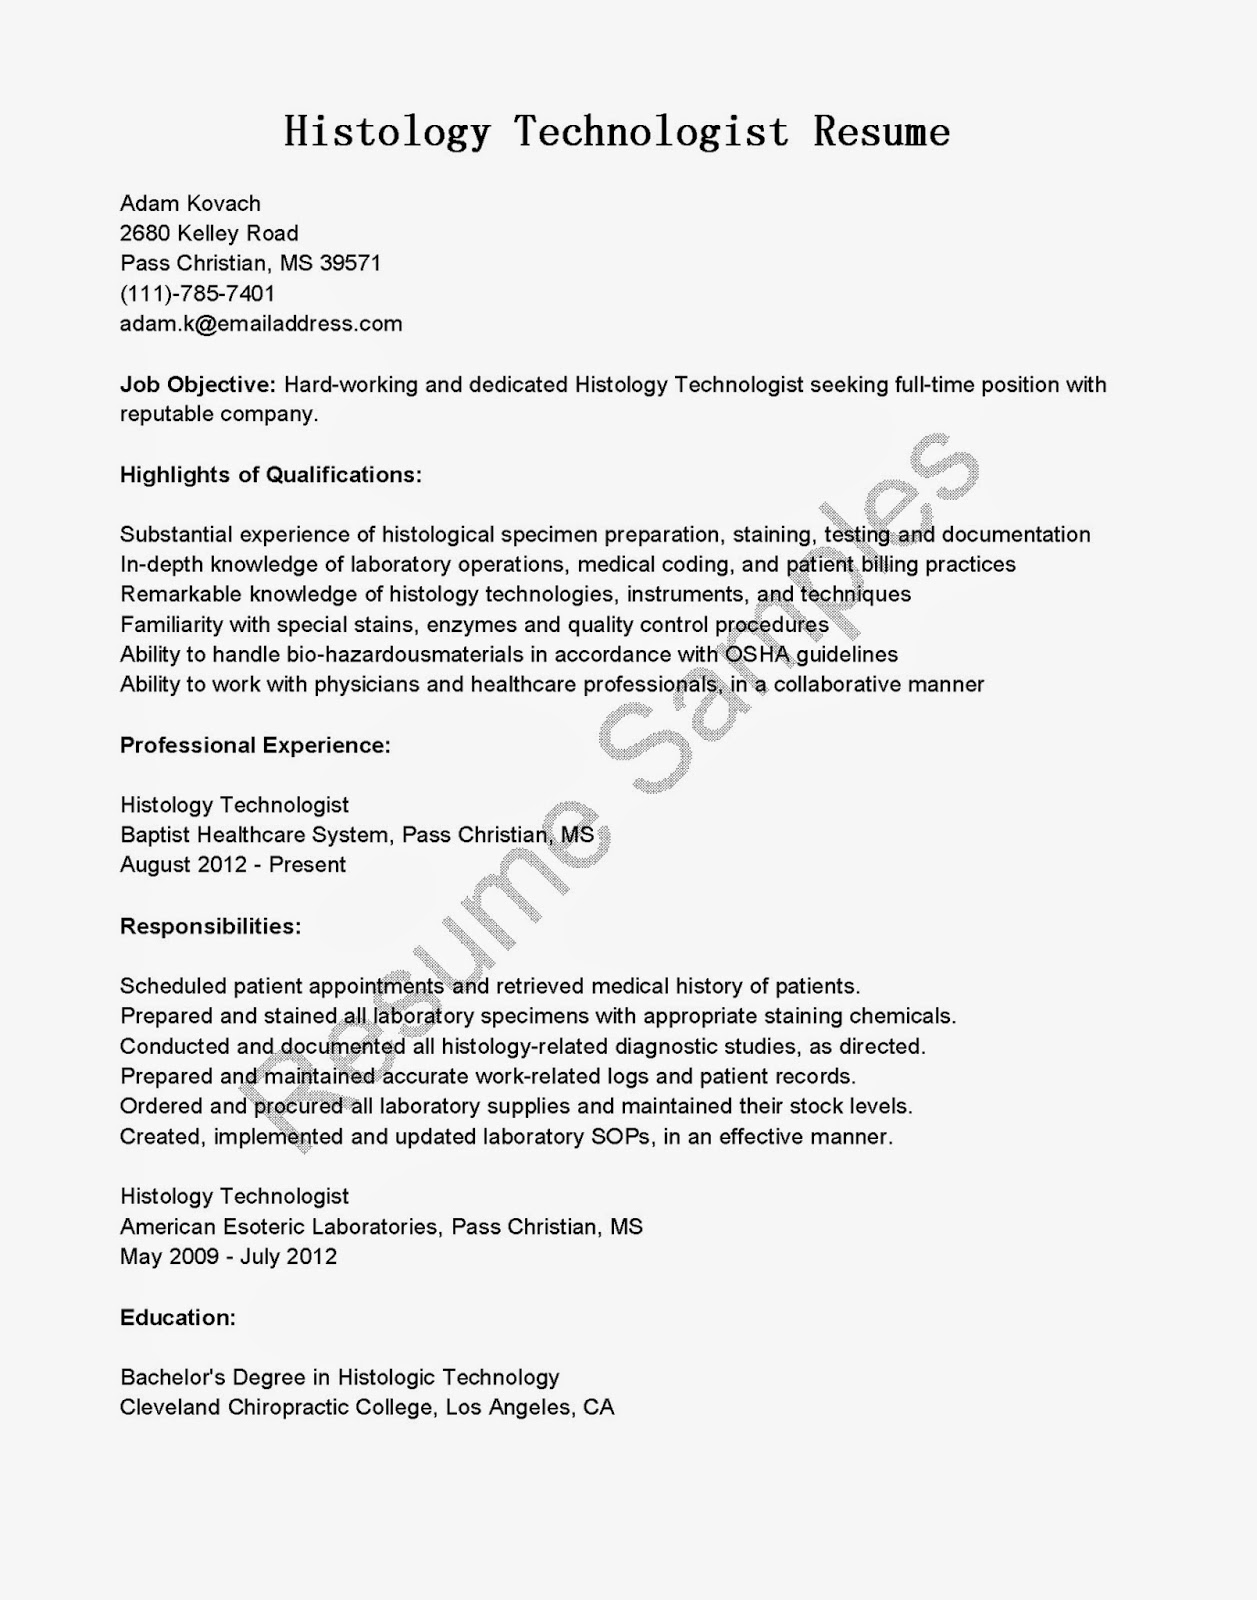 ... resume. ray example job description mri. x ray tech resume x ray tech